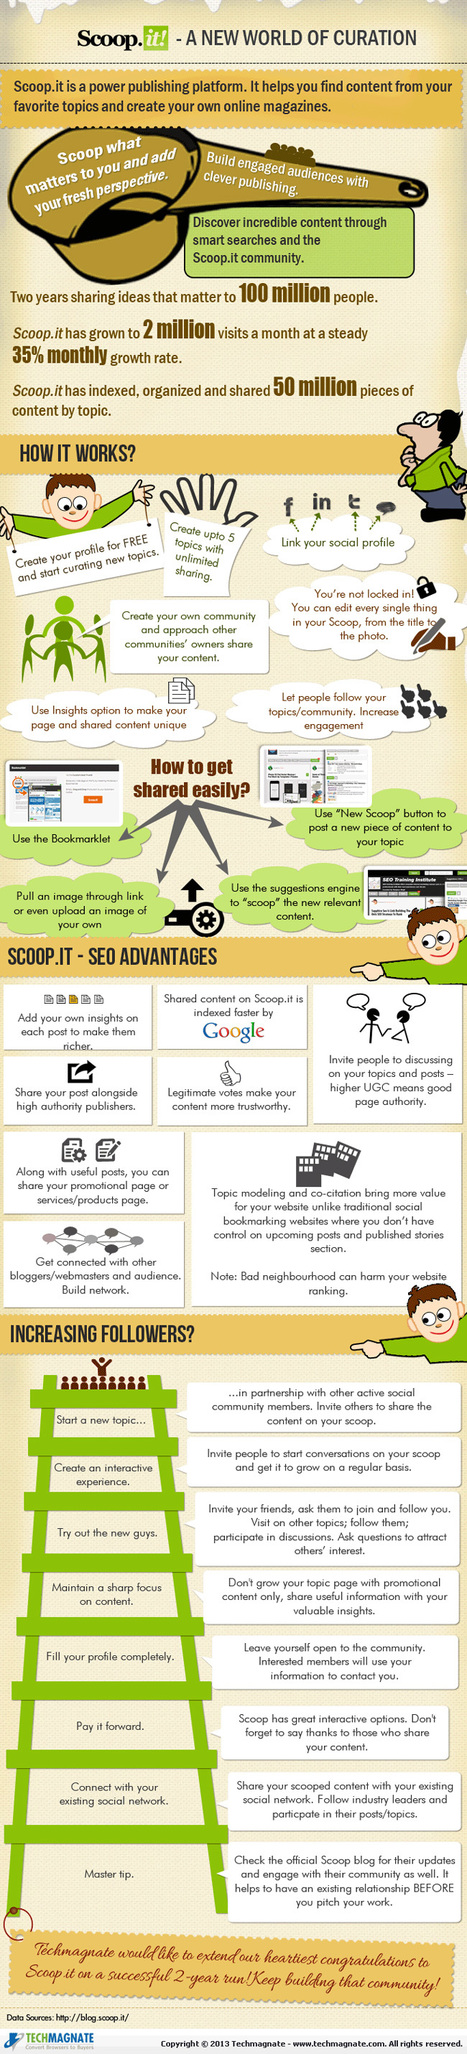 Scoop.It for SEO – A New World of Curation [Infographic] | E-Learning and Online Teaching | Scoop.it